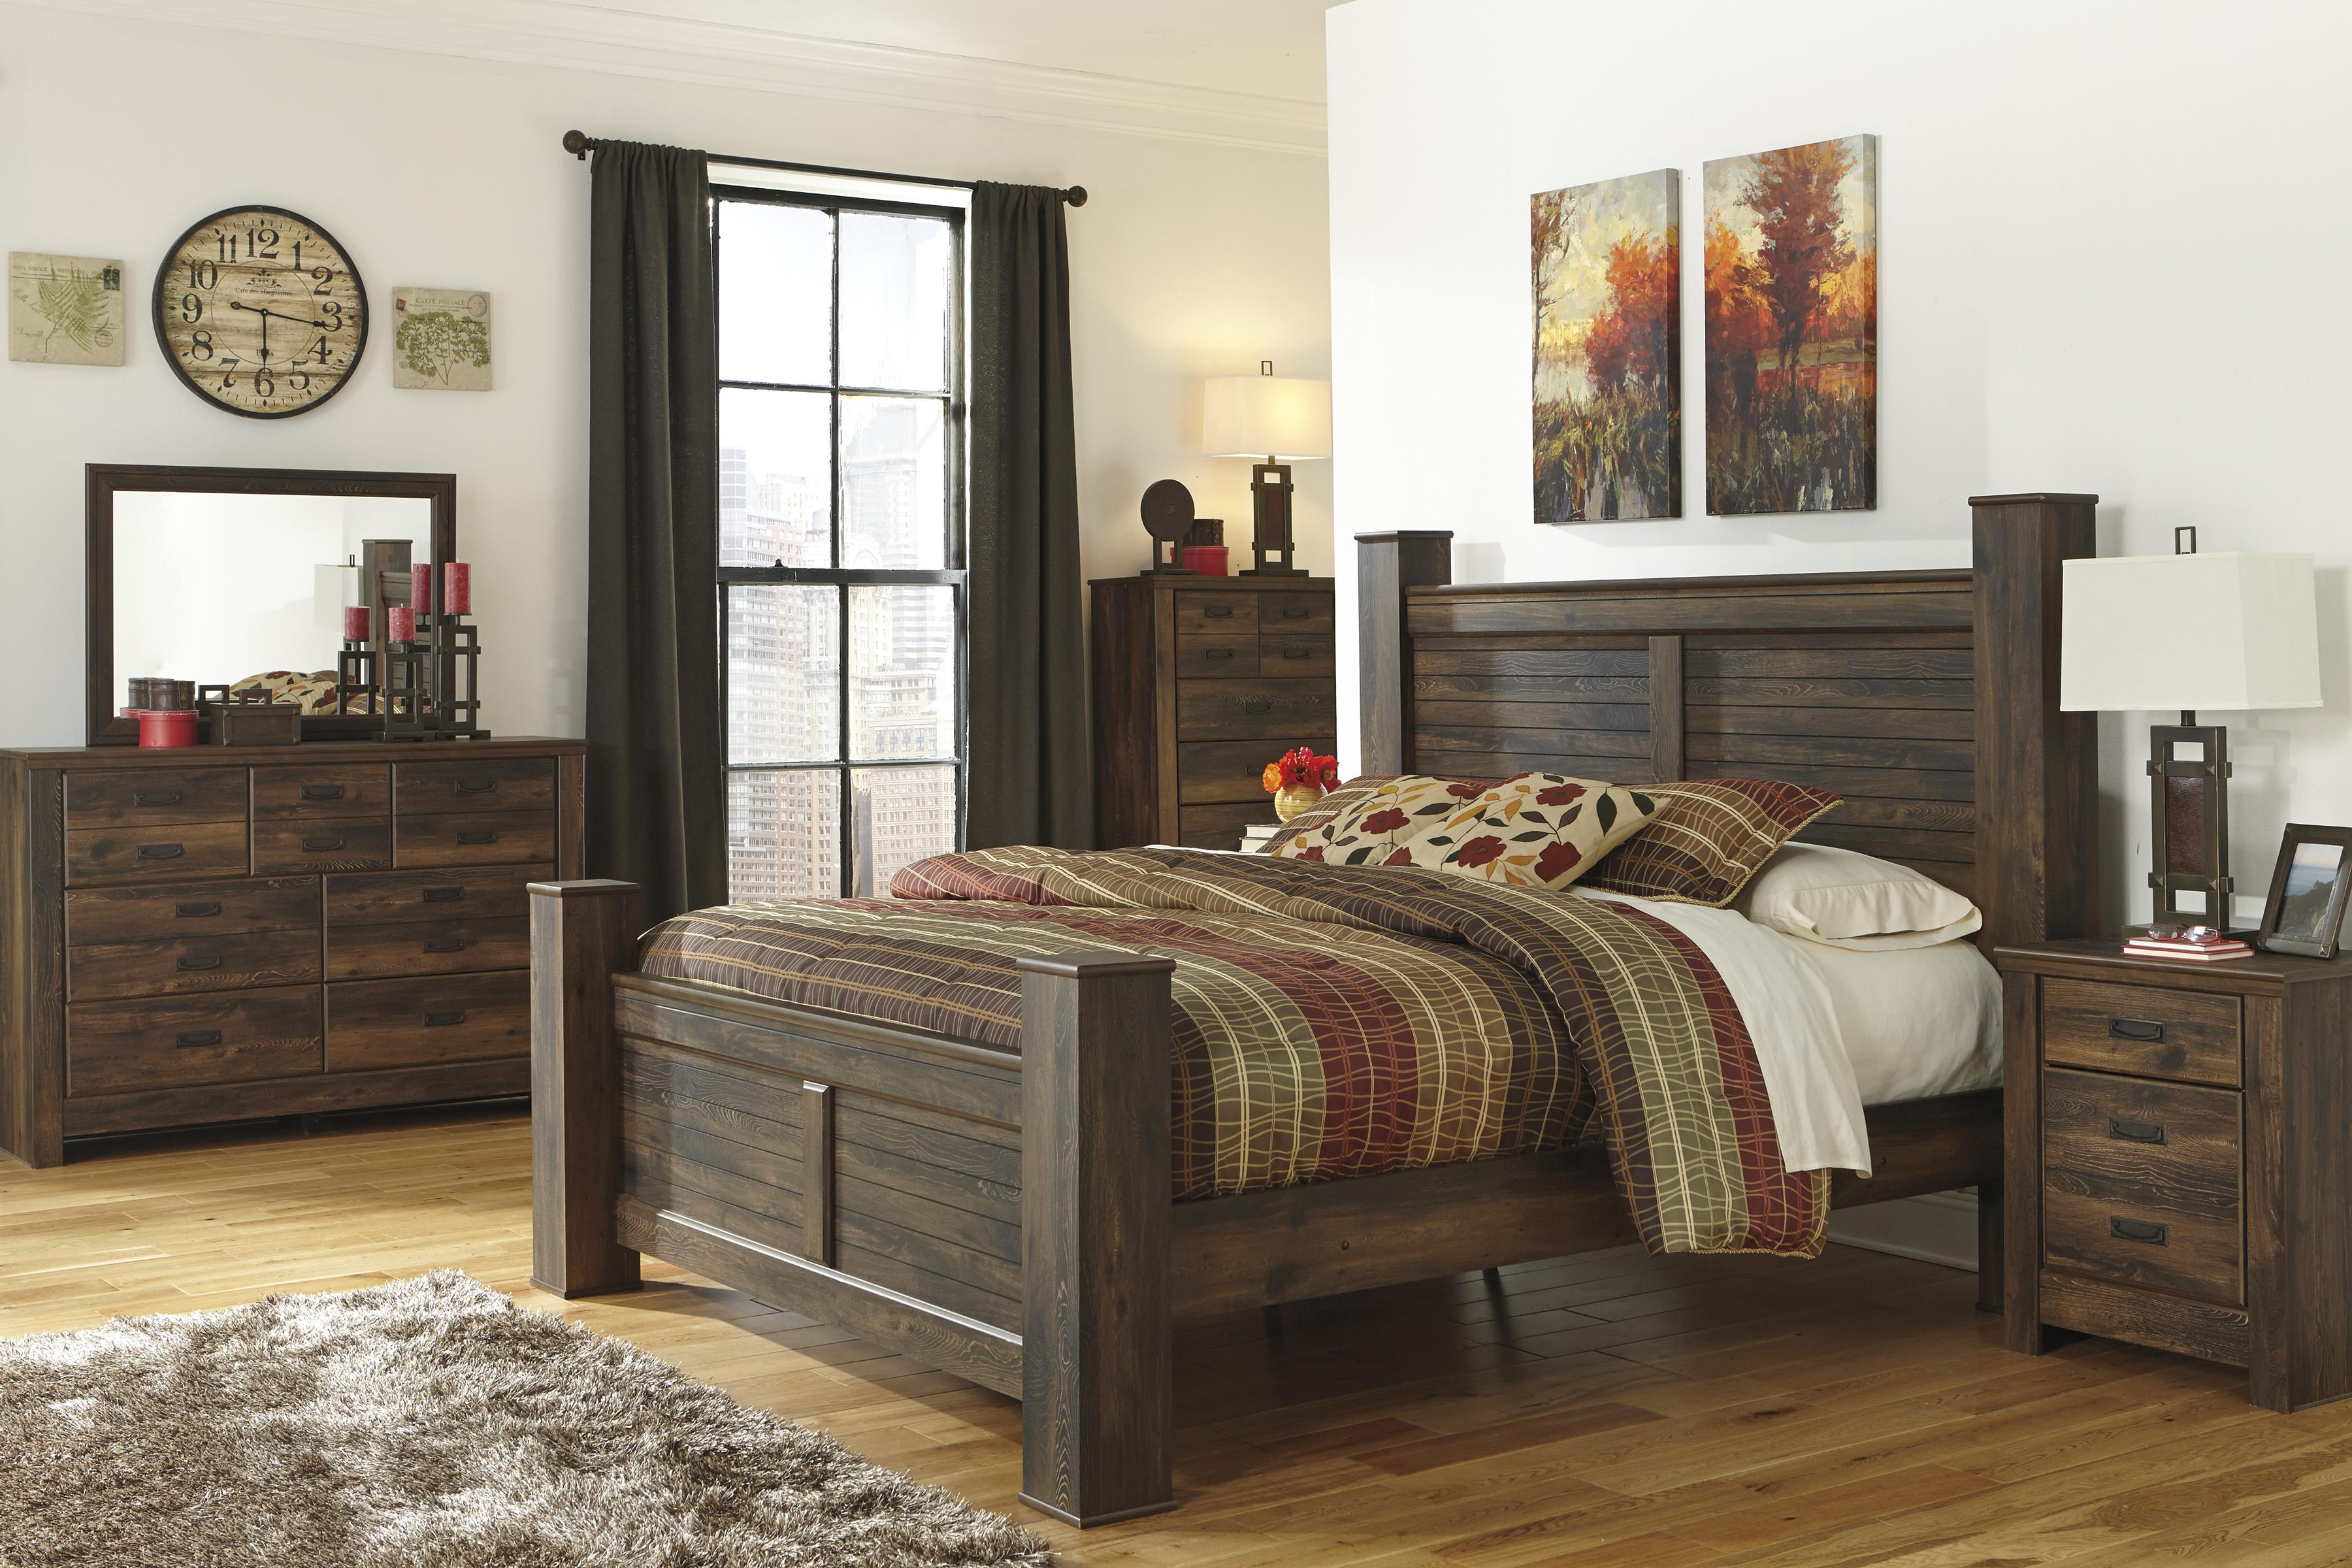 Signature Design By Ashley Quinden King Bedroom Group Olinde 39 S Furniture Bedroom Groups